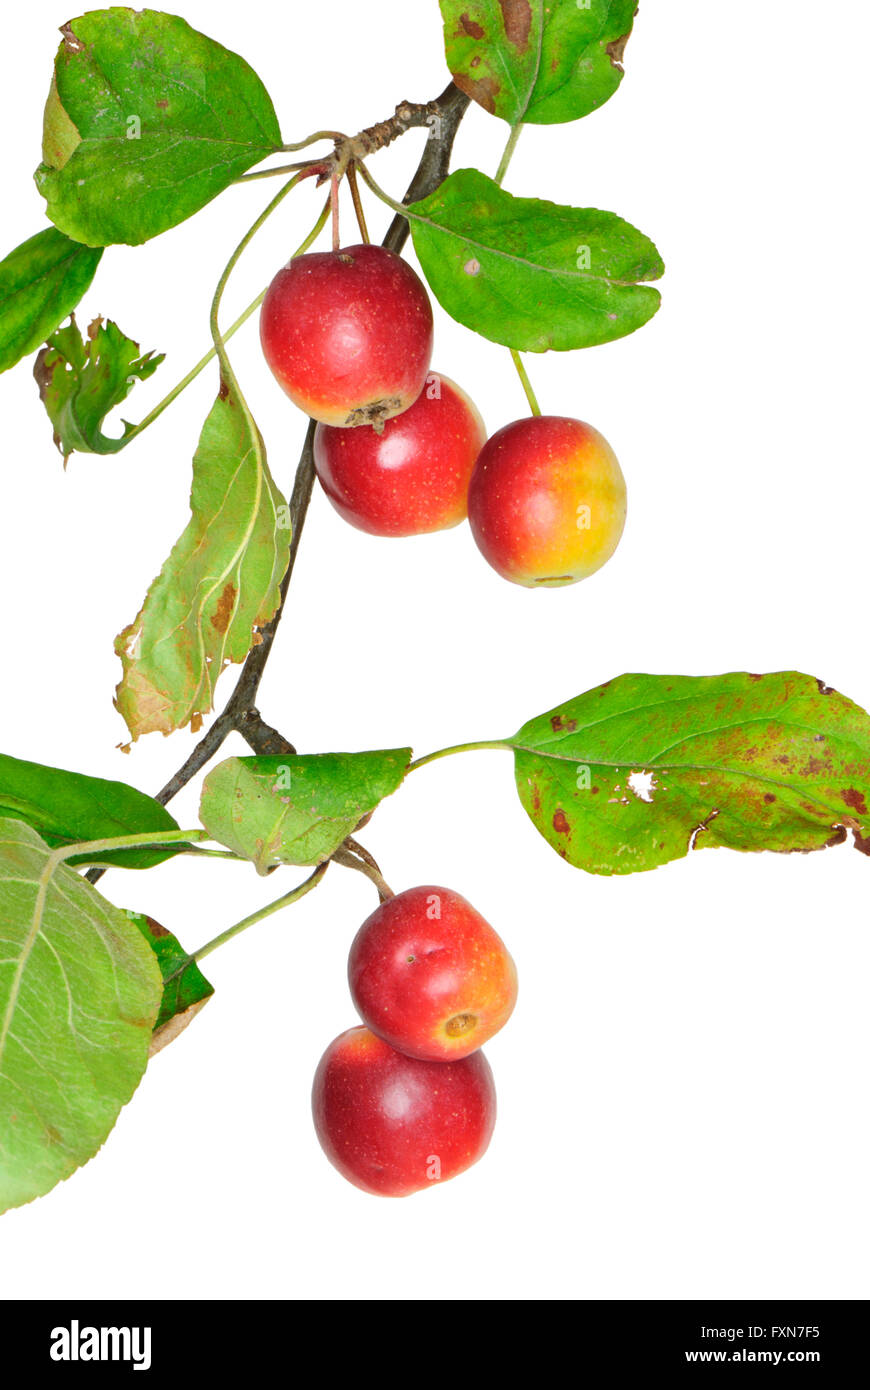 Twig with crabapples, Malus, isolated - Stock Image